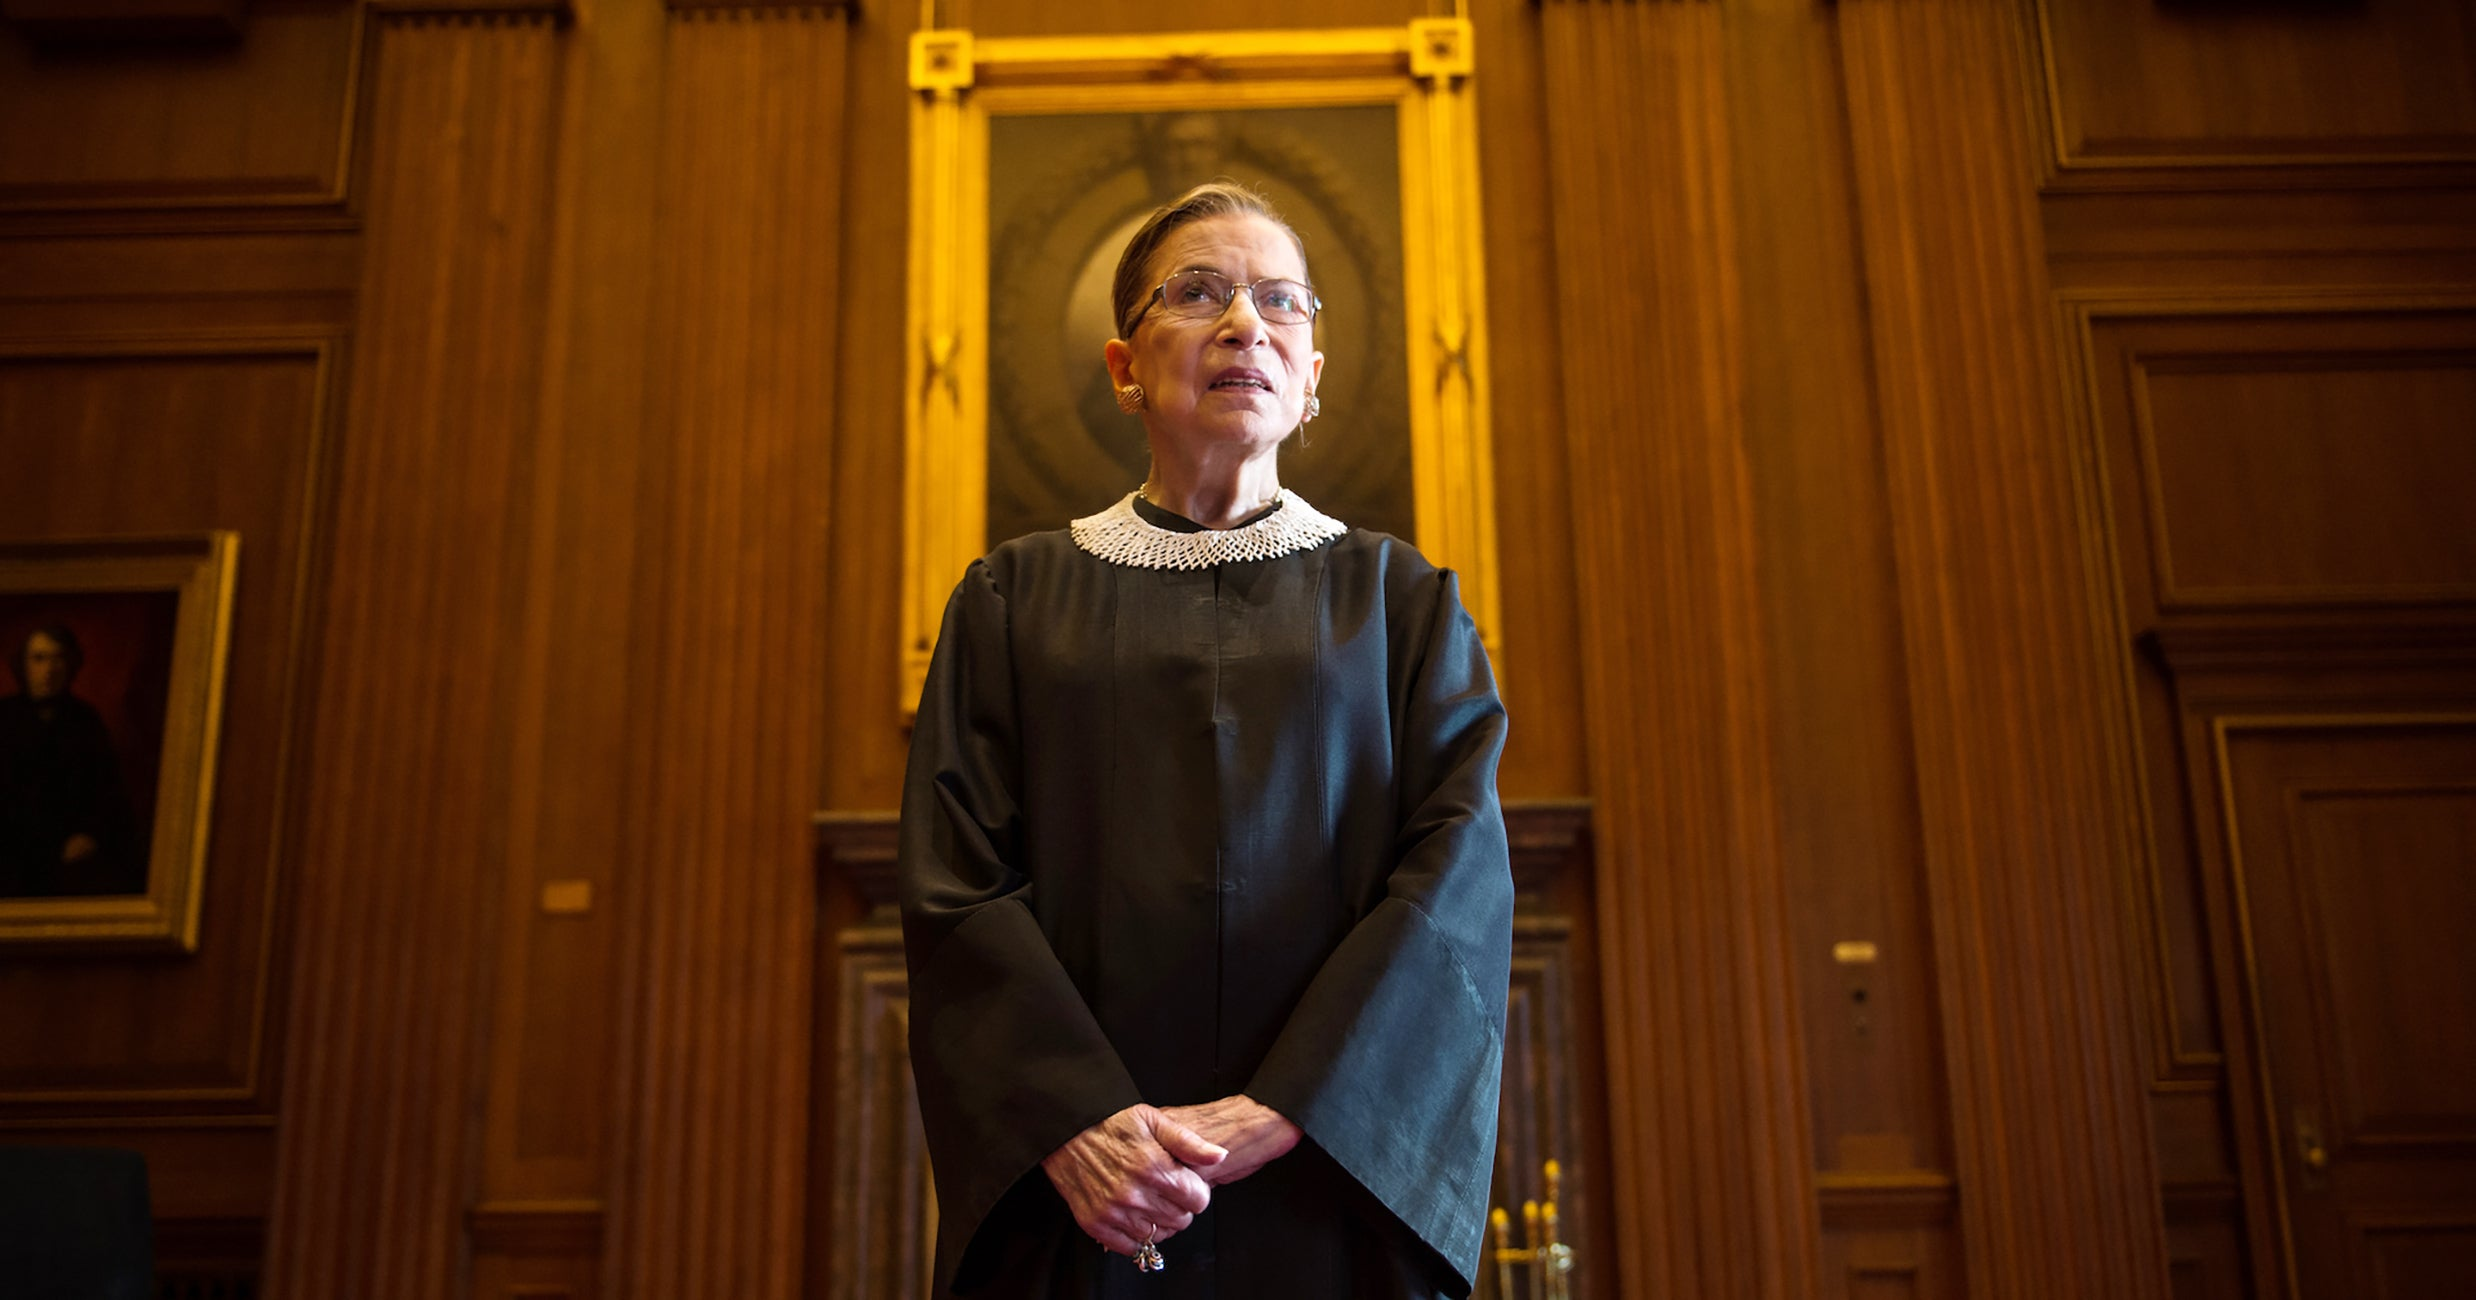 Yes, Ruth Bader Ginsburg Became A Feminist Meme. But She Was So Much More.